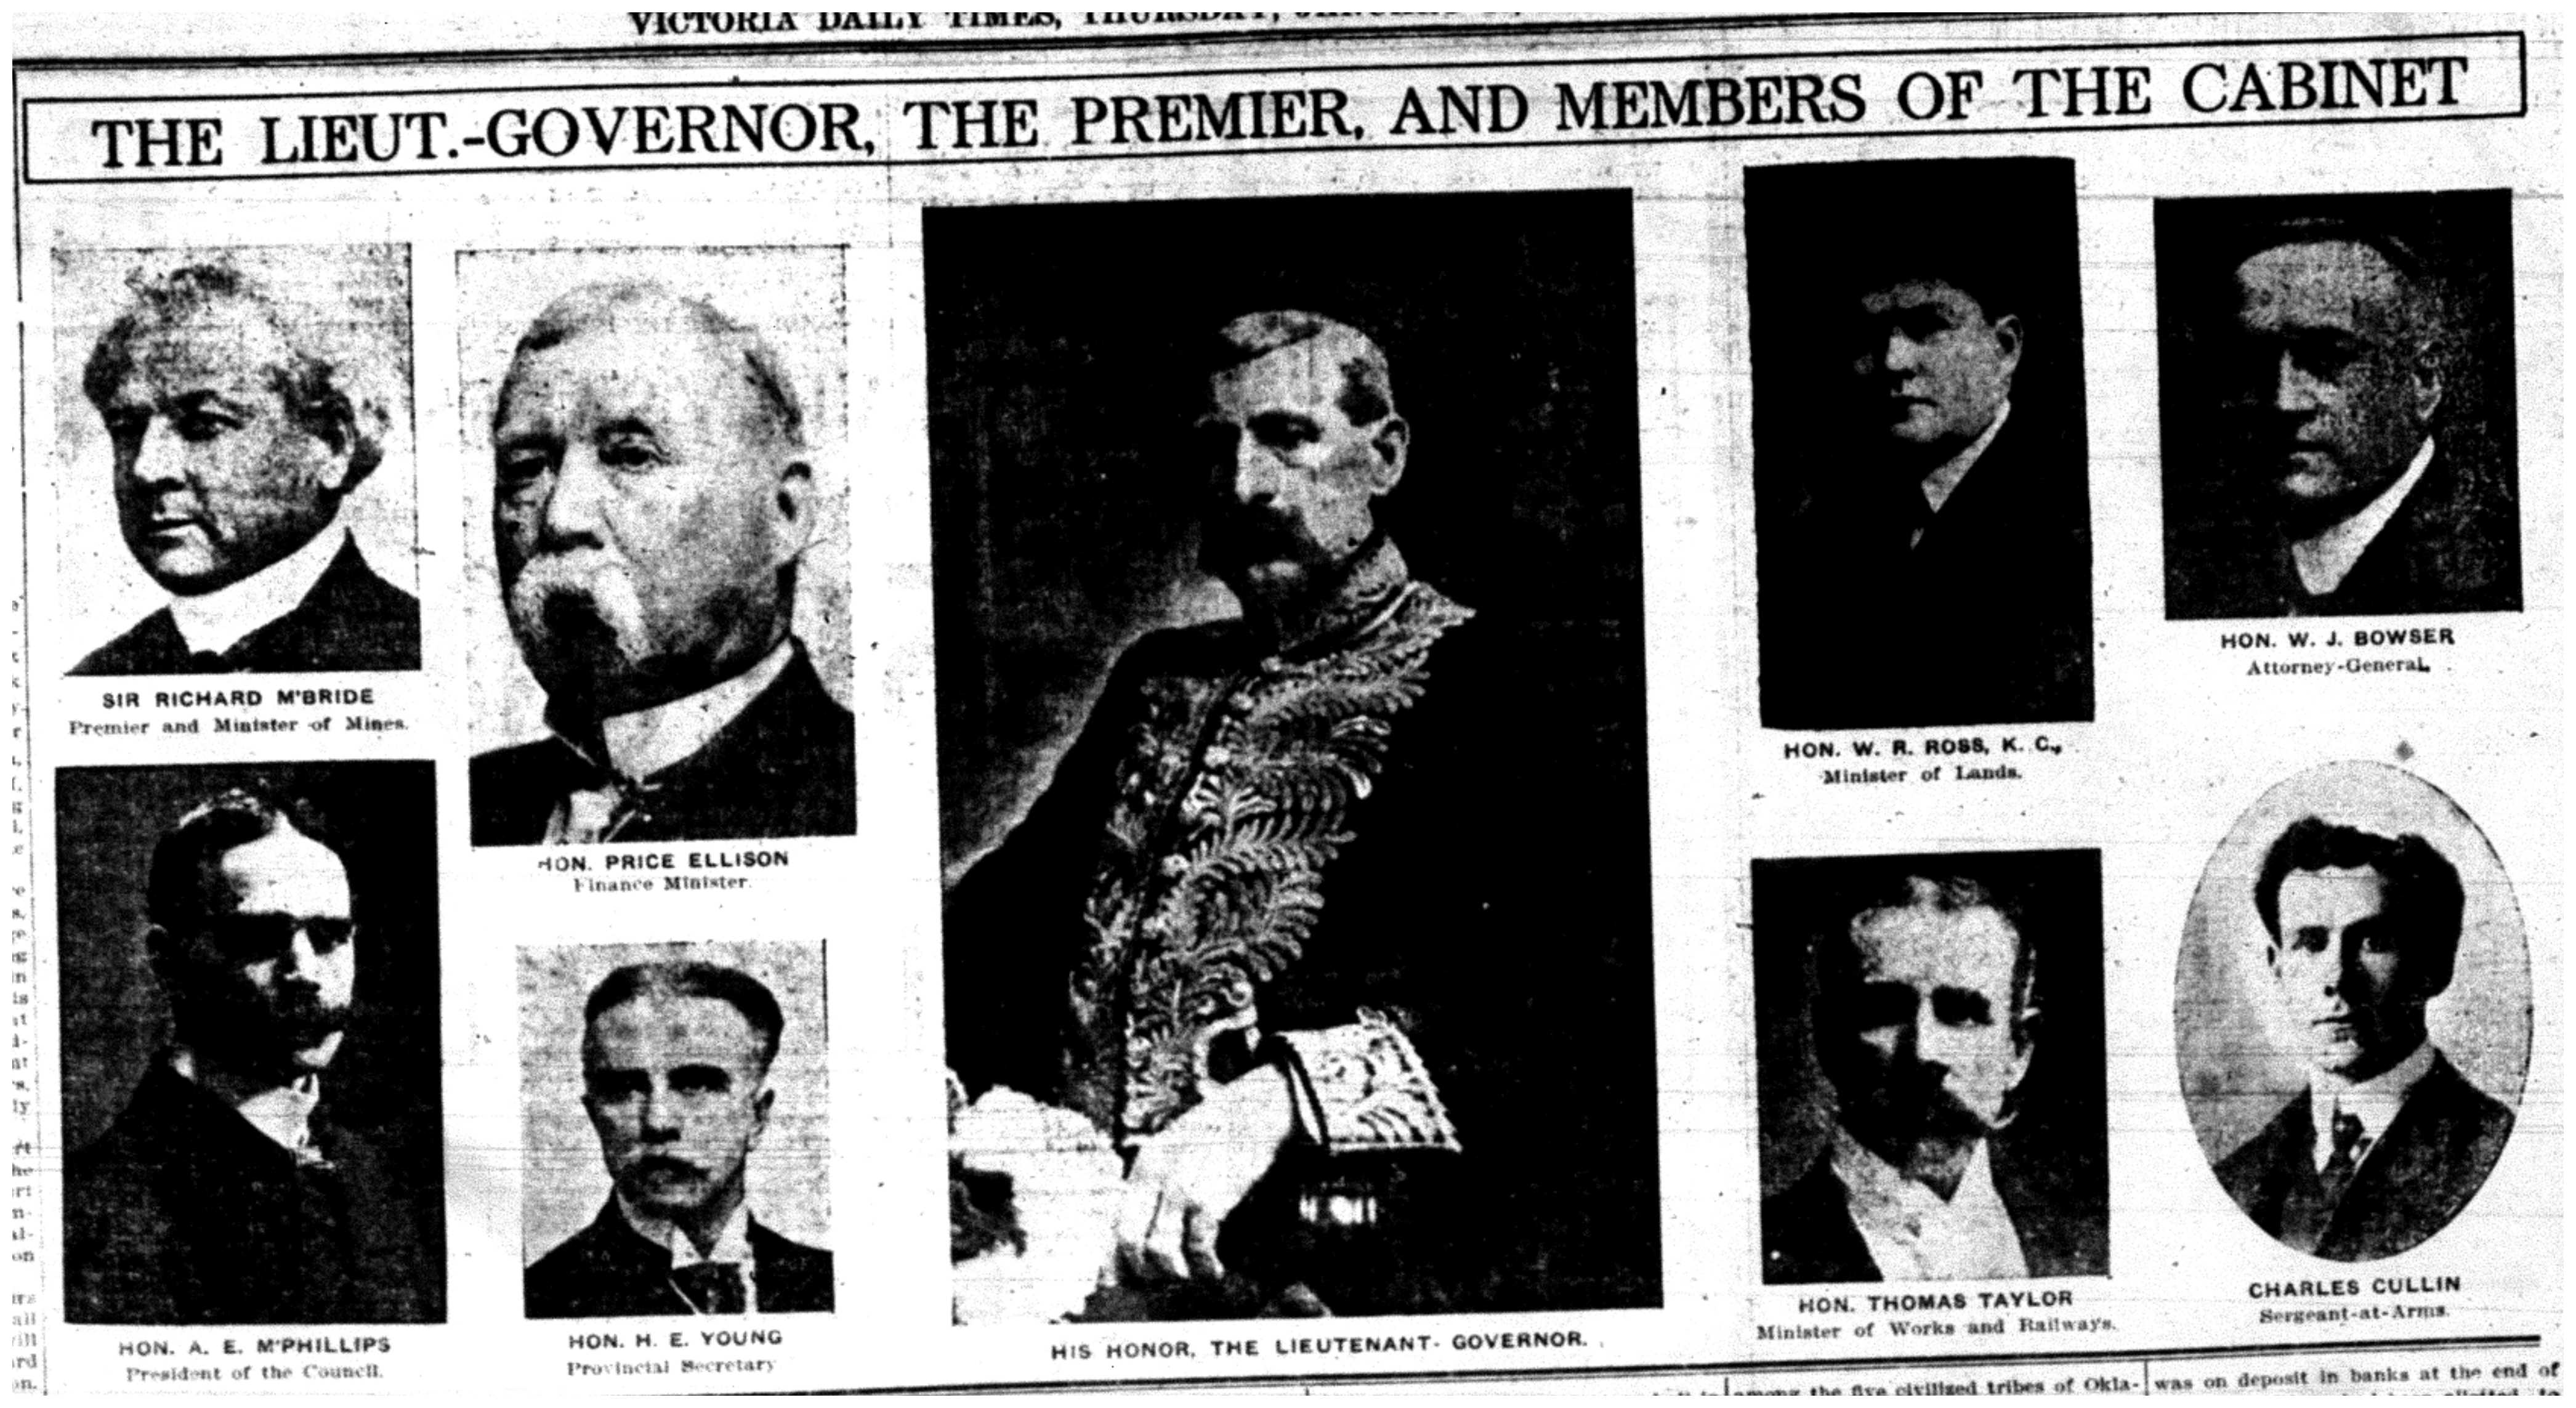 """The Lieut.-Governor, The Premier, and Members of Cabinet"""